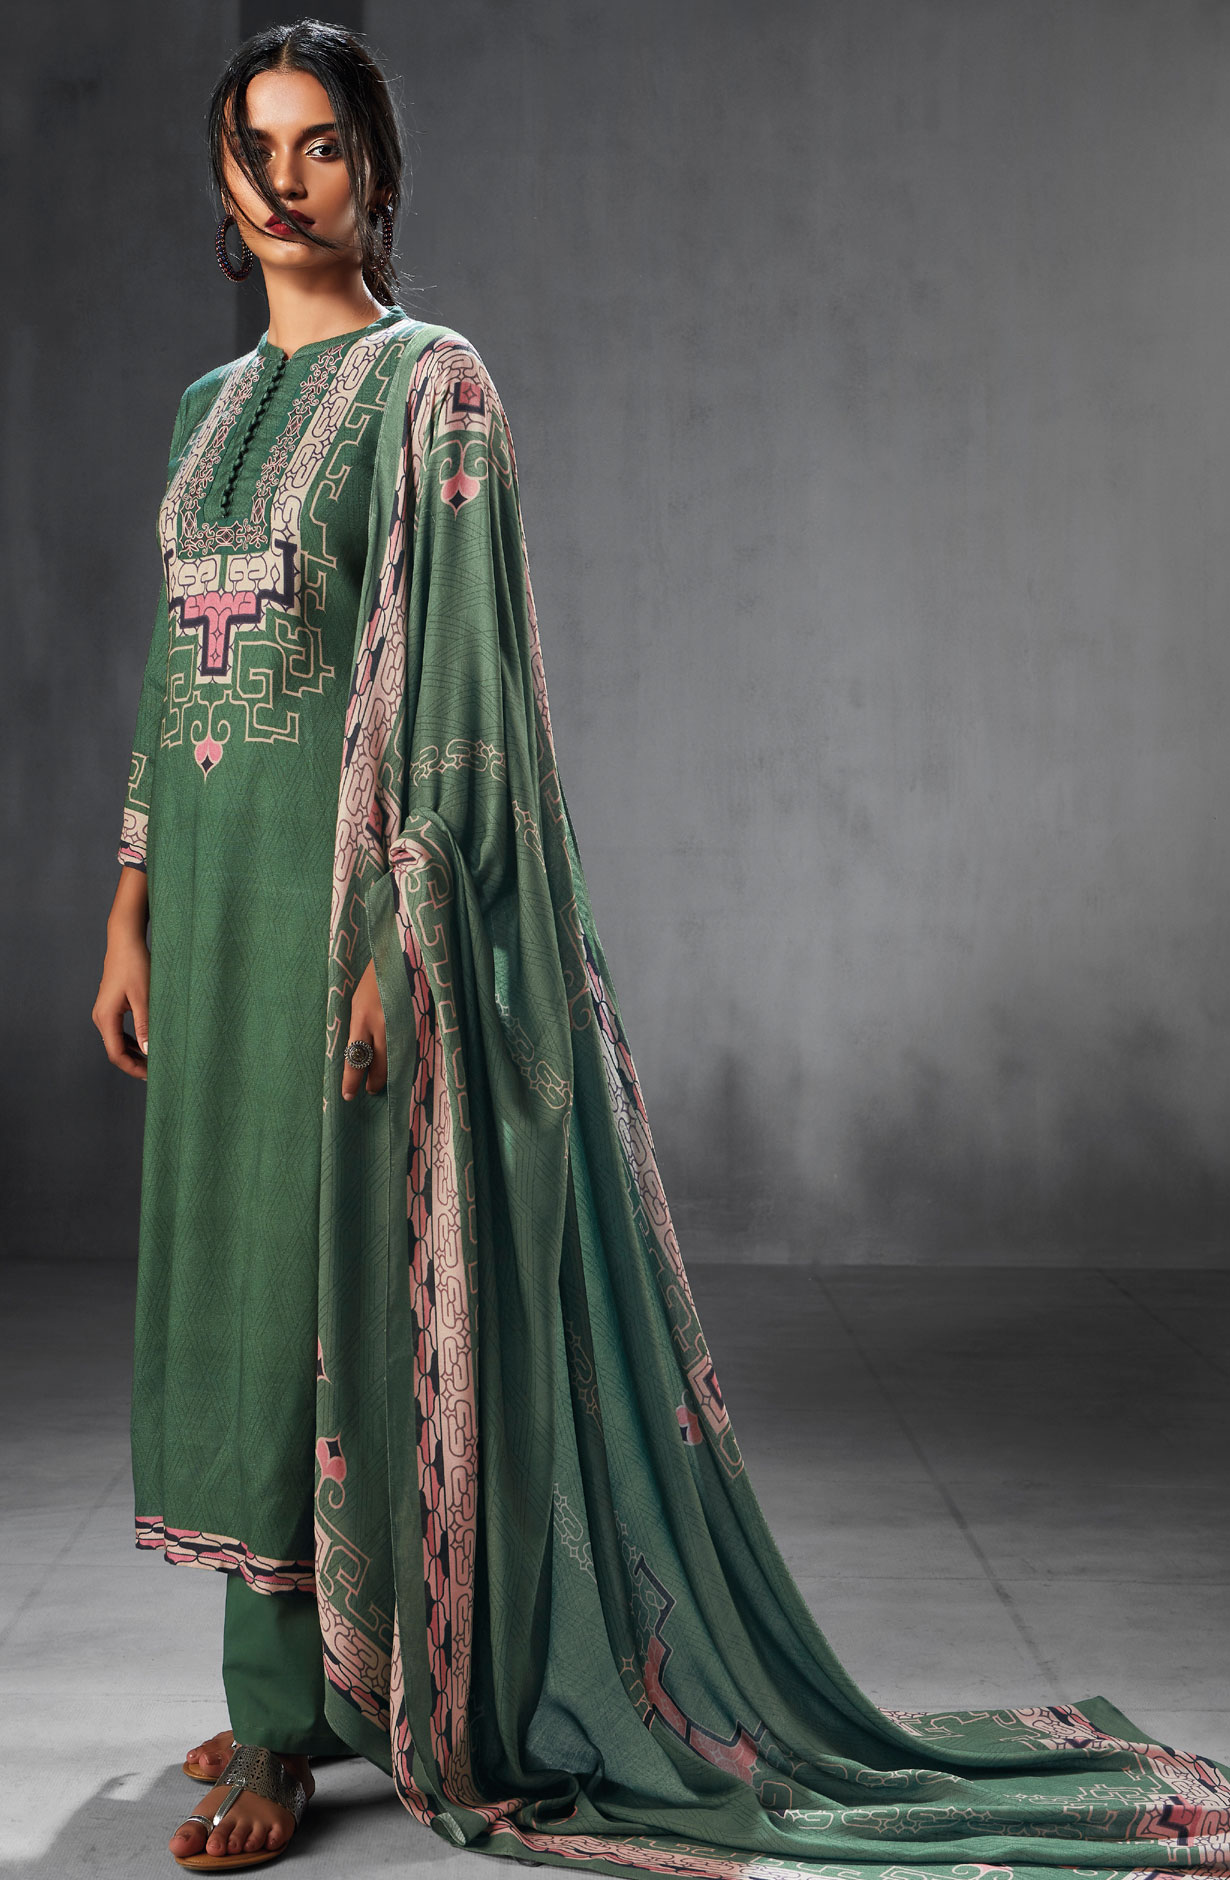 698793eca6 Pashmina Wool Winter Collection Digital Printed Salwar Suits In Bottle  Green | WHI6538